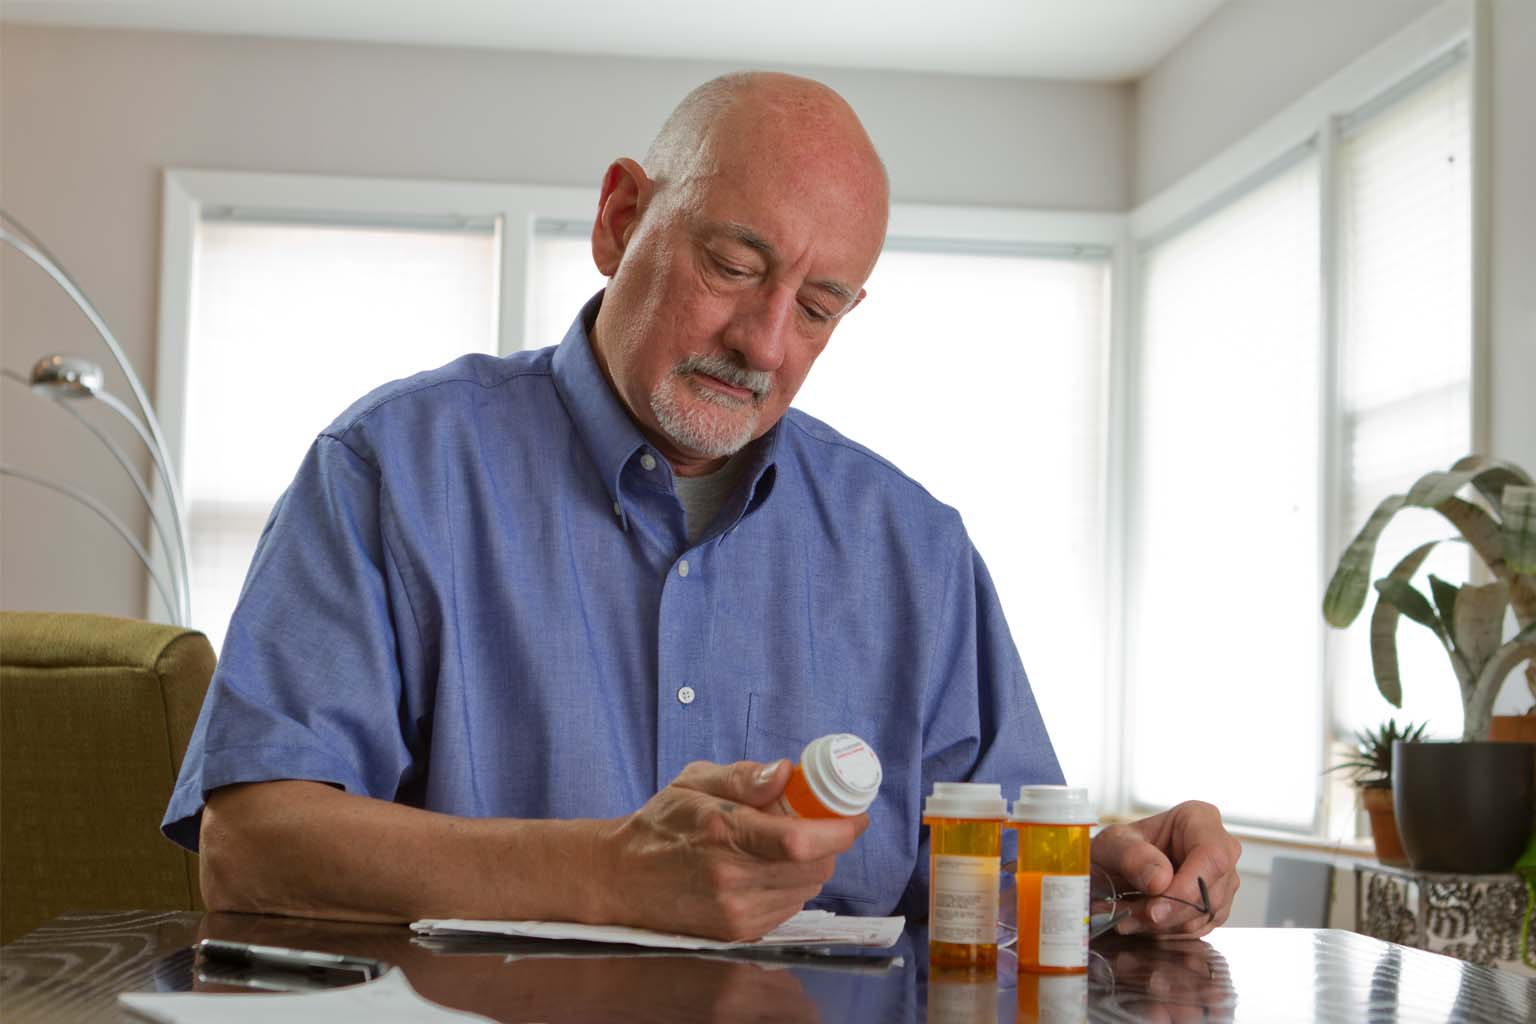 man reading label on prescription bottle